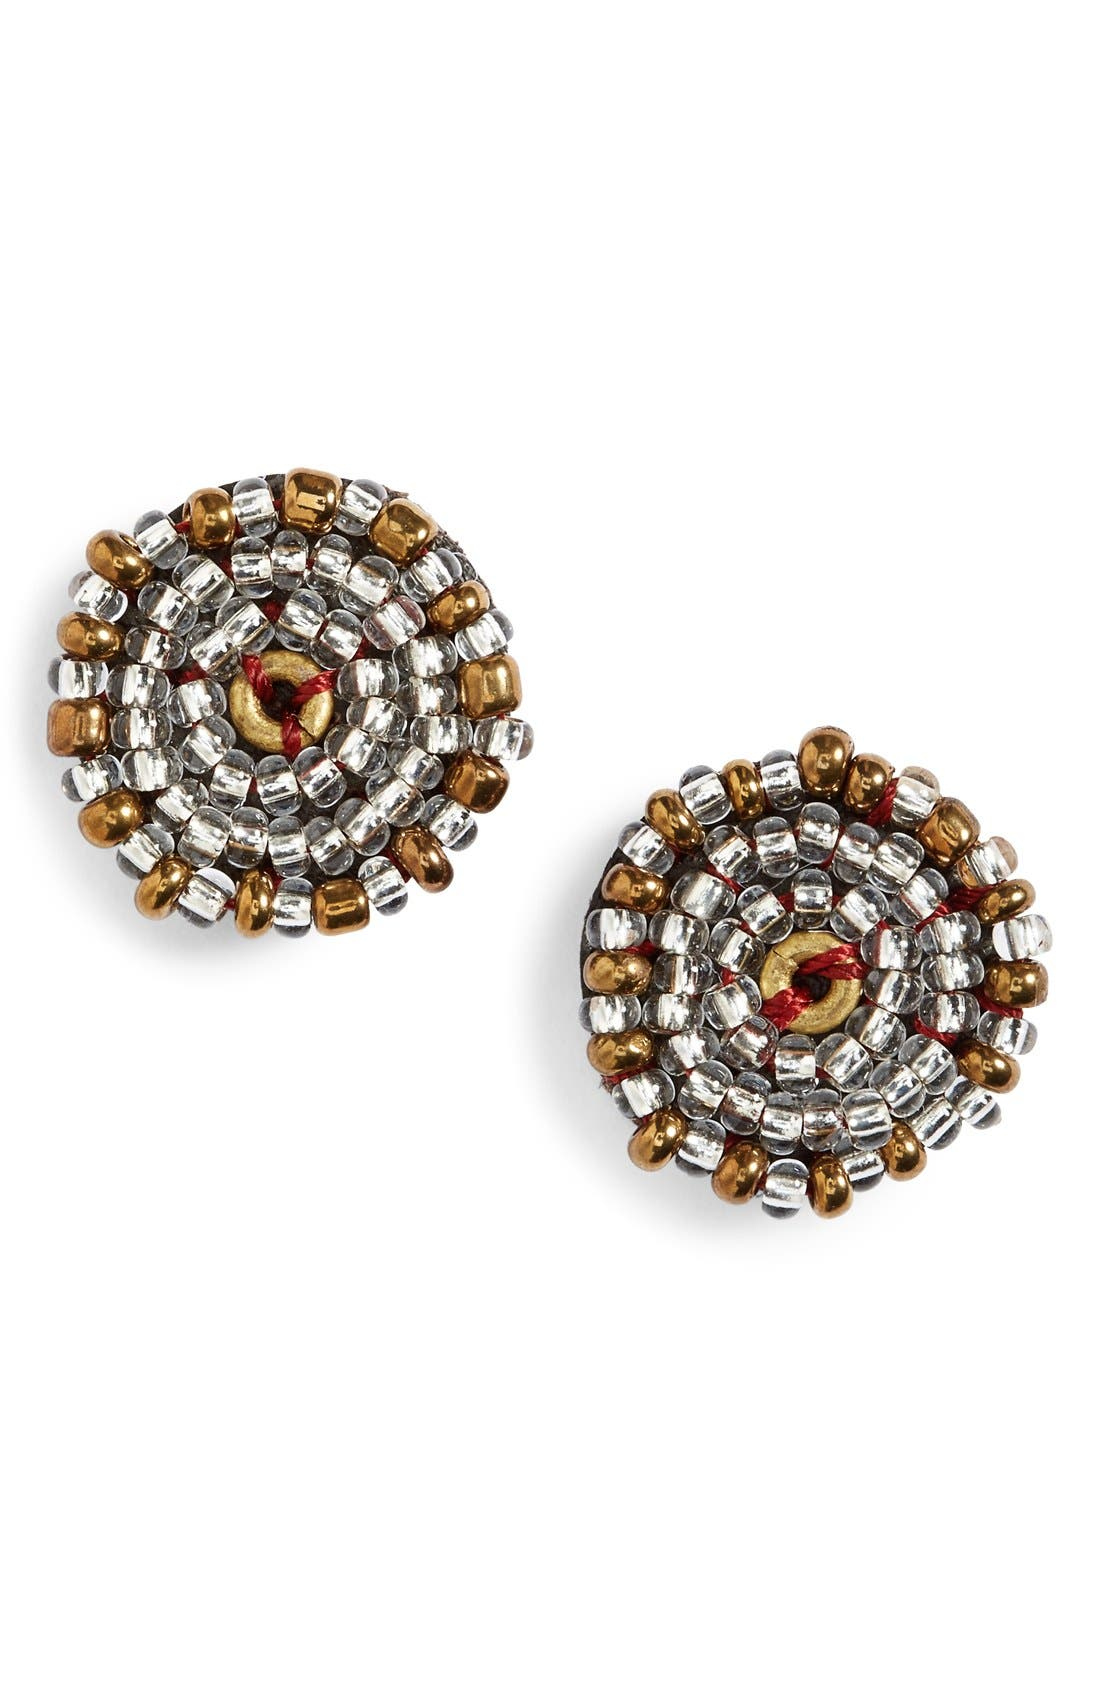 Alternate Image 1 Selected - Me to We Artisans Beaded Leather Stud Earrings (Online Only)